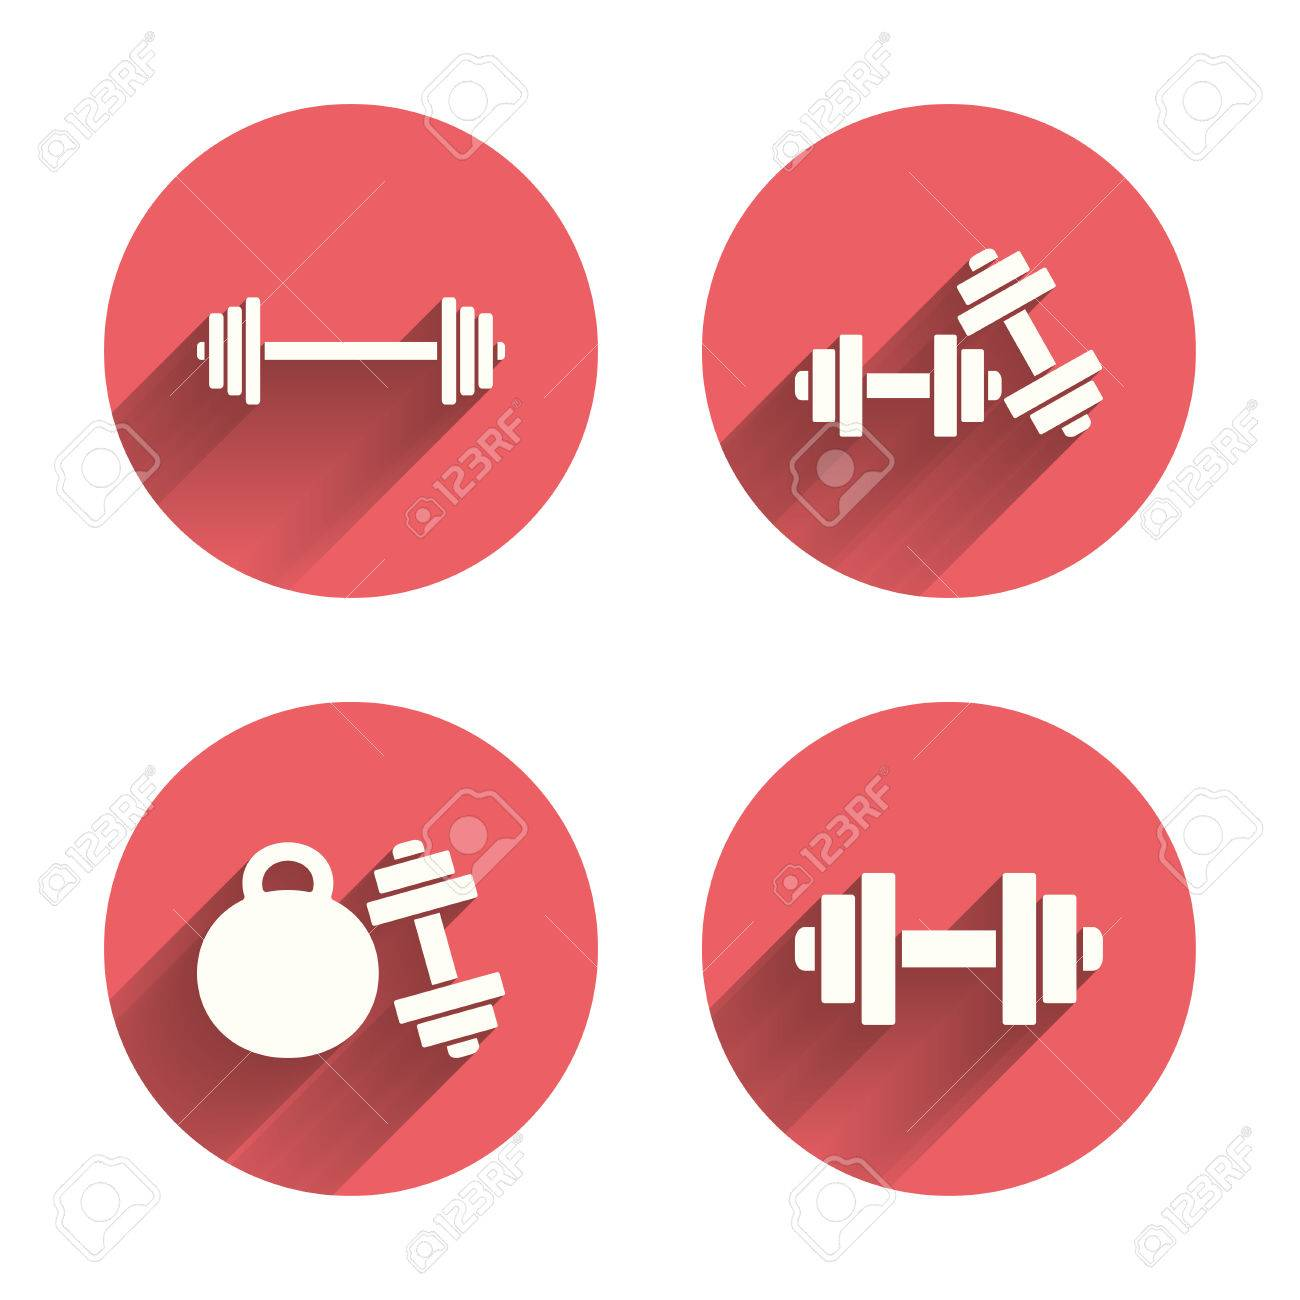 Dumbbells sign icons fitness sport symbols gym workout equipment dumbbells sign icons fitness sport symbols gym workout equipment pink circles flat buttons biocorpaavc